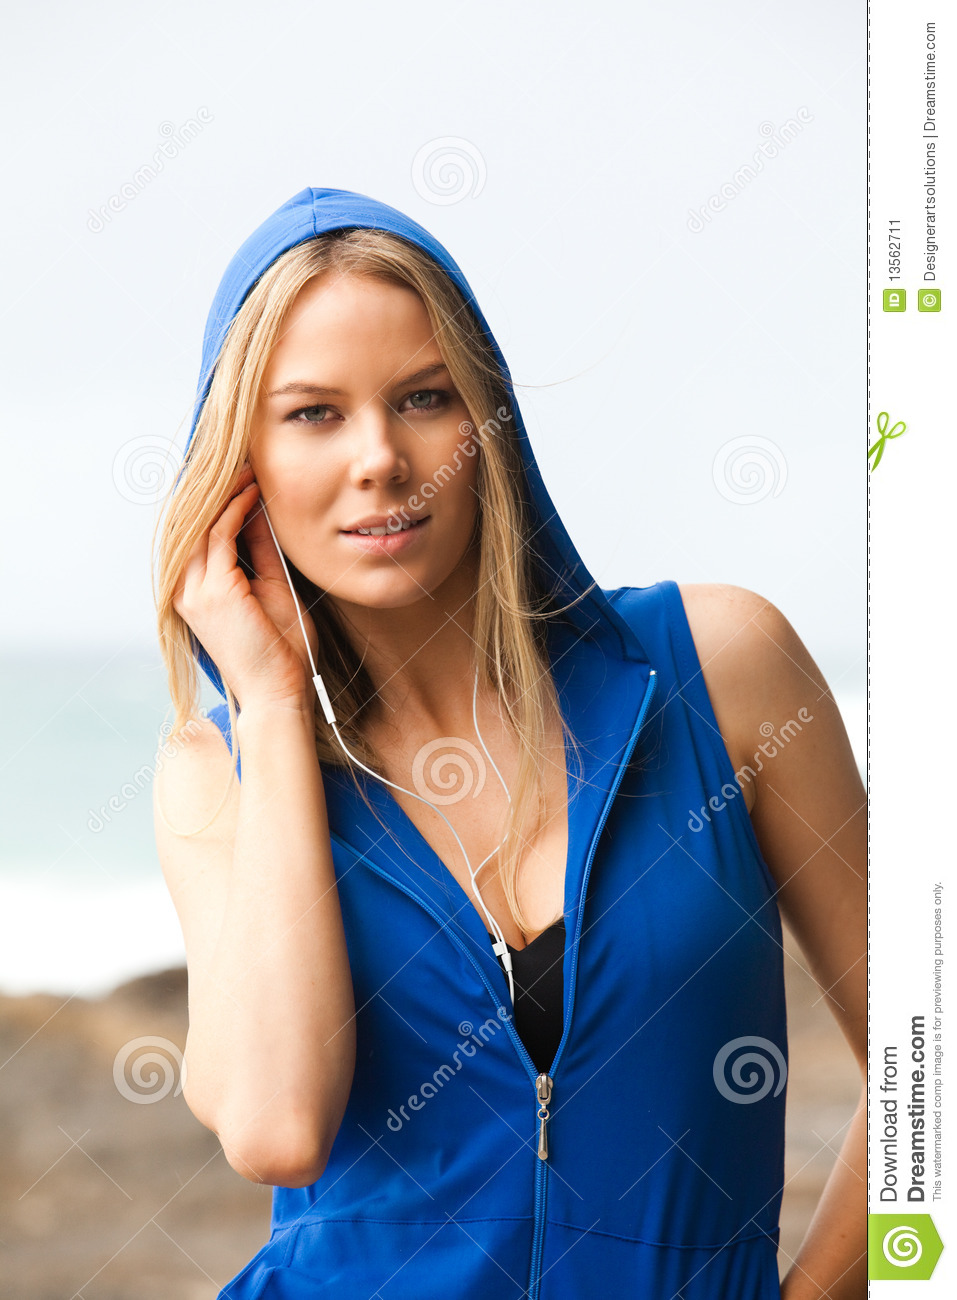 Portrait of a young woman wearing a sleeveless hoodie and headphones